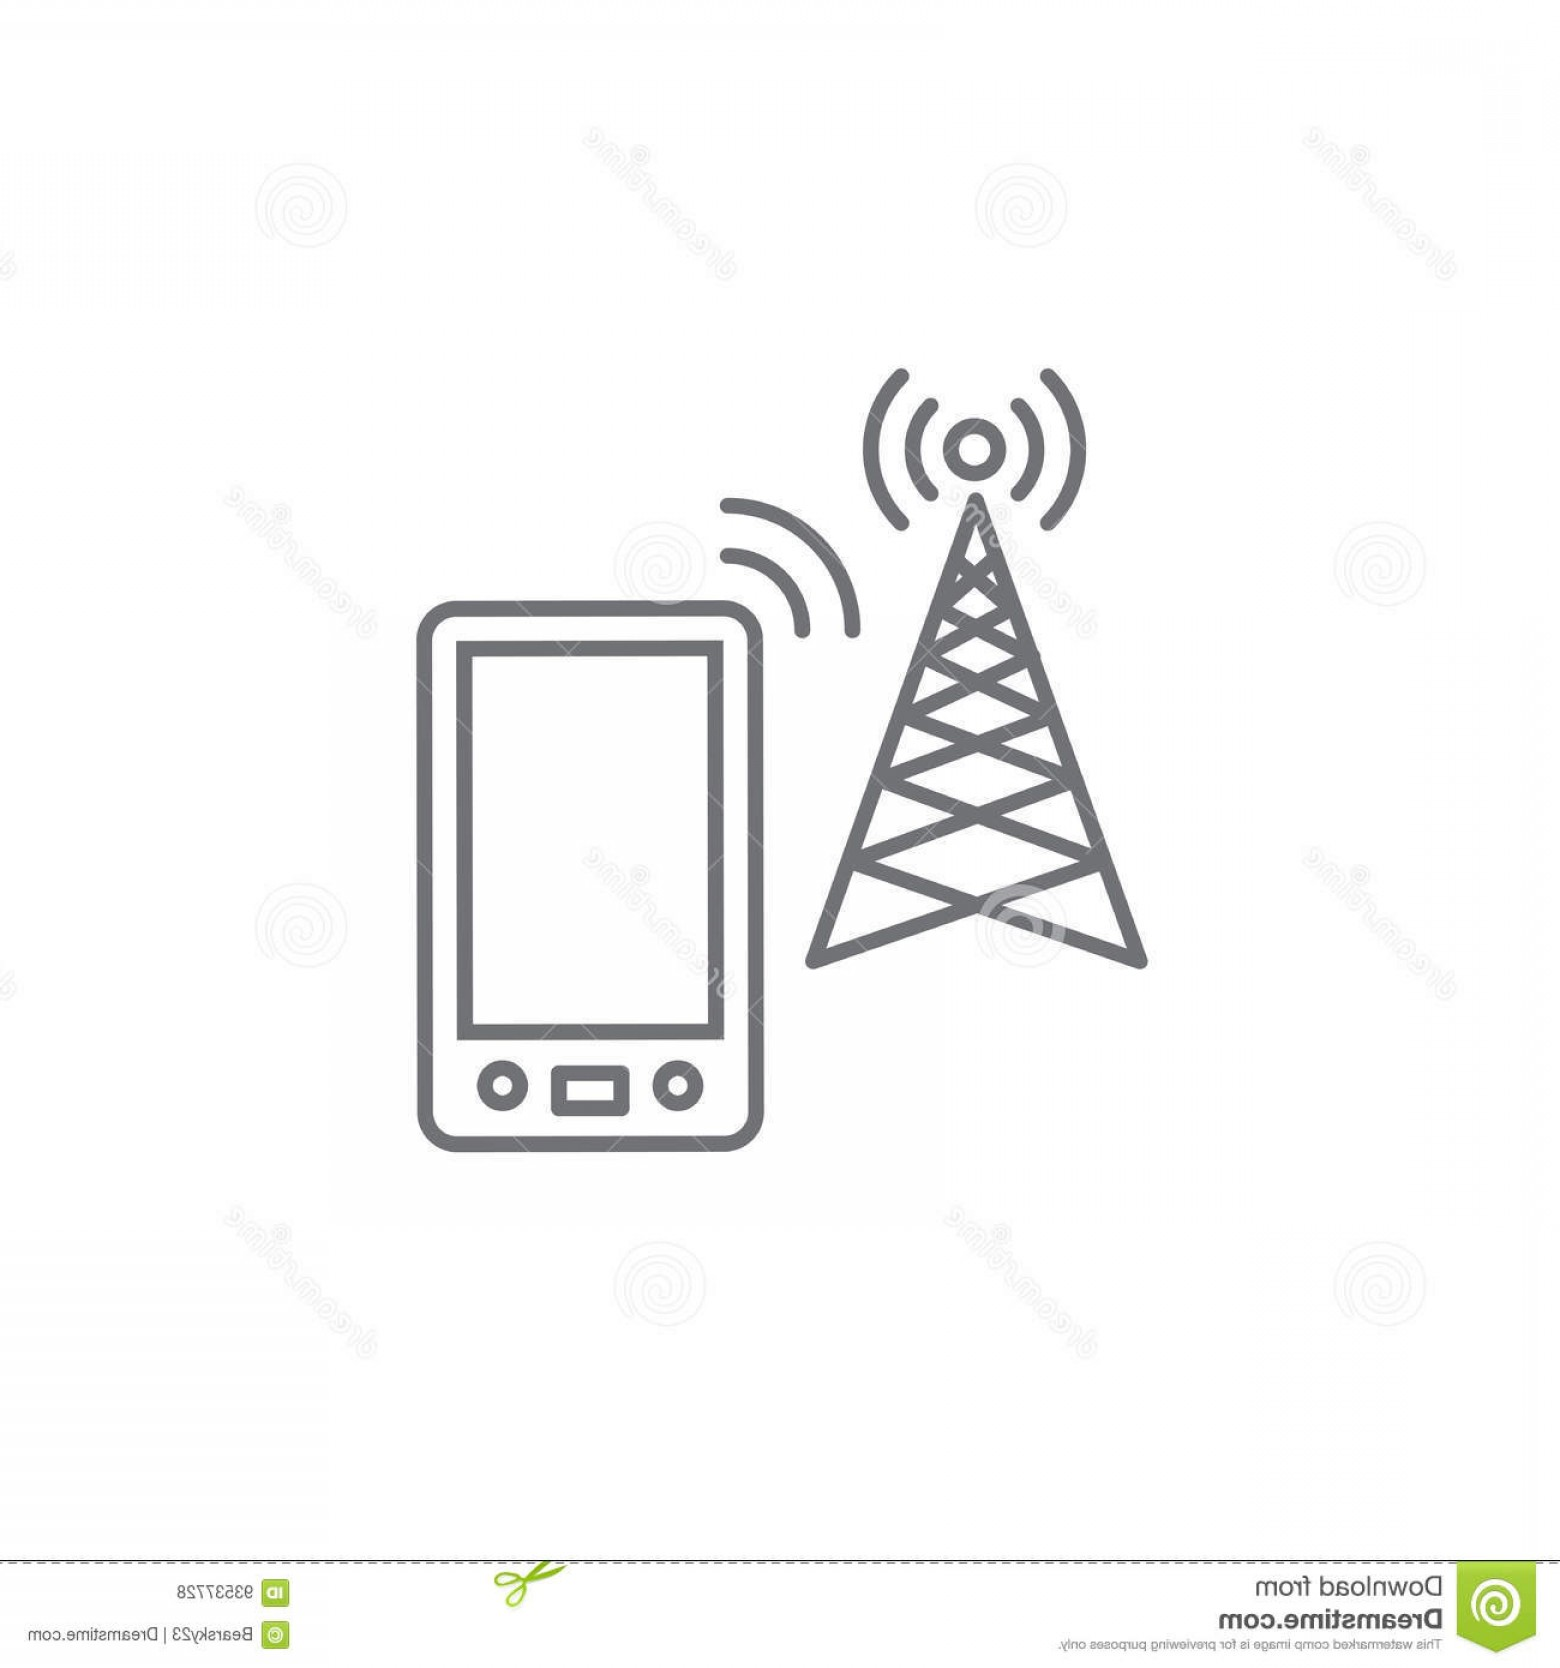 Vector Phone Tower: Stock Illustration Cellphone Tower Icon Emitting Pinging Transmission Waves W Image